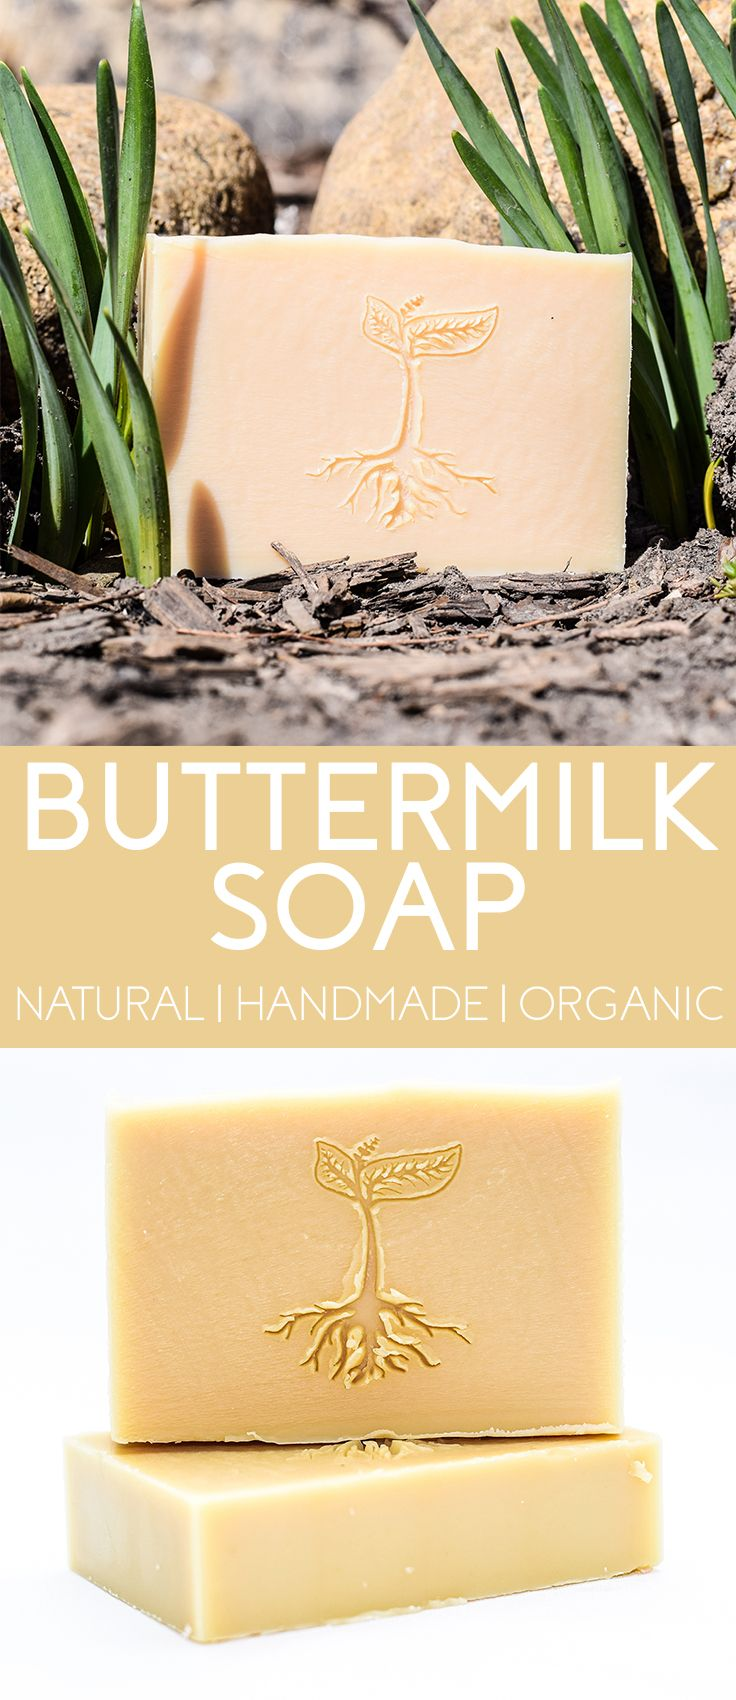 Very gentle soap !! It will cleanse, soothe and not strip away natural oils, unscented and as always - no synthetic ingredients. It also include moisturizing Shea butter and nutrient rich Avocado oil for that extra moisture and luxury. Gentle Buttermilk Soap is great as a facial bar, especially If you have vary sensitive skin. It will leave your skin feeling fresh and moisturized